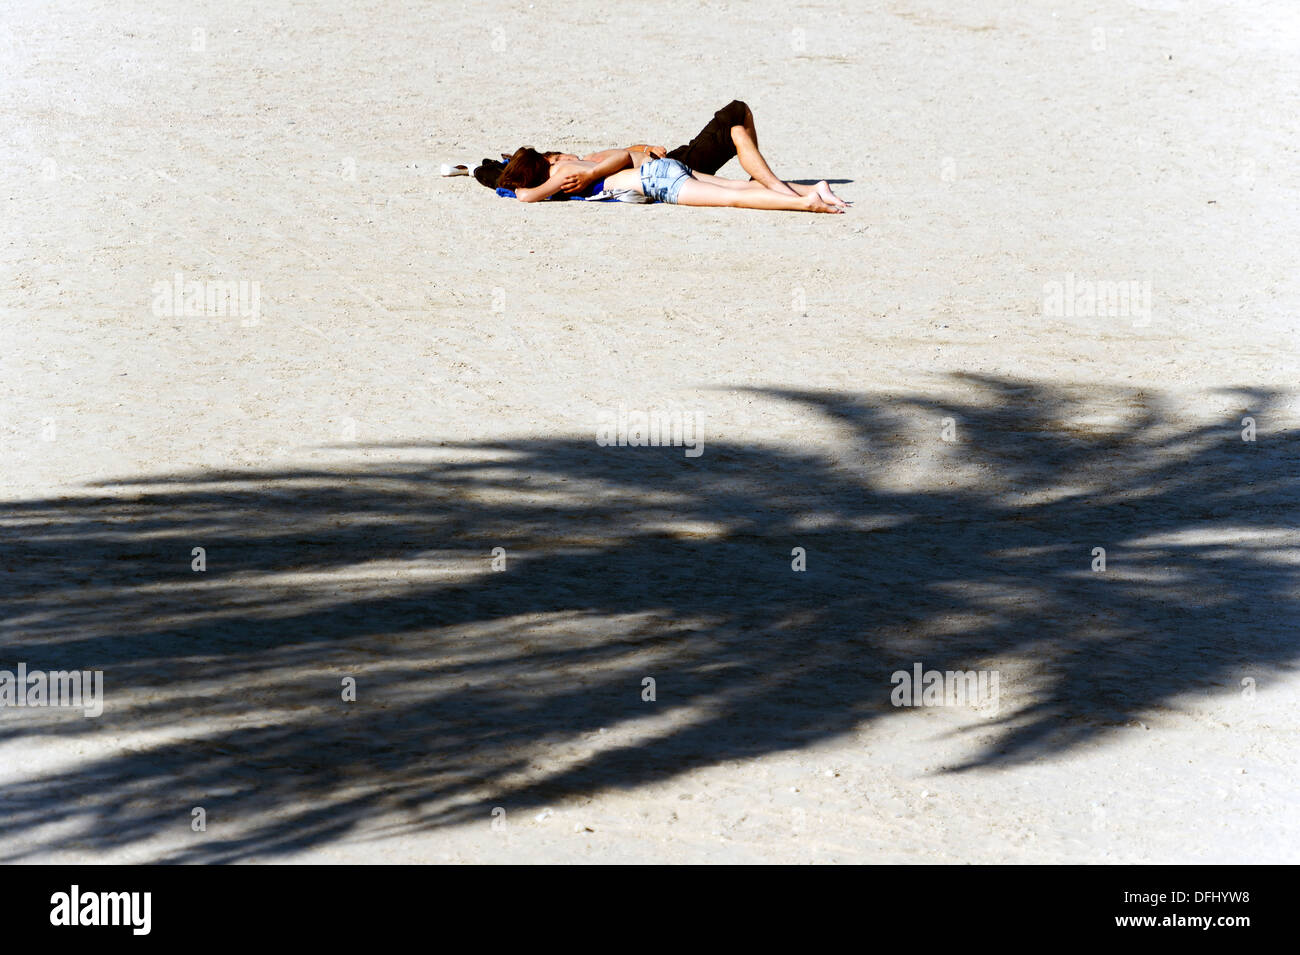 Europe, France, Alpes-Maritimes, Menton. Couple of teenager entwined on the beach. - Stock Image